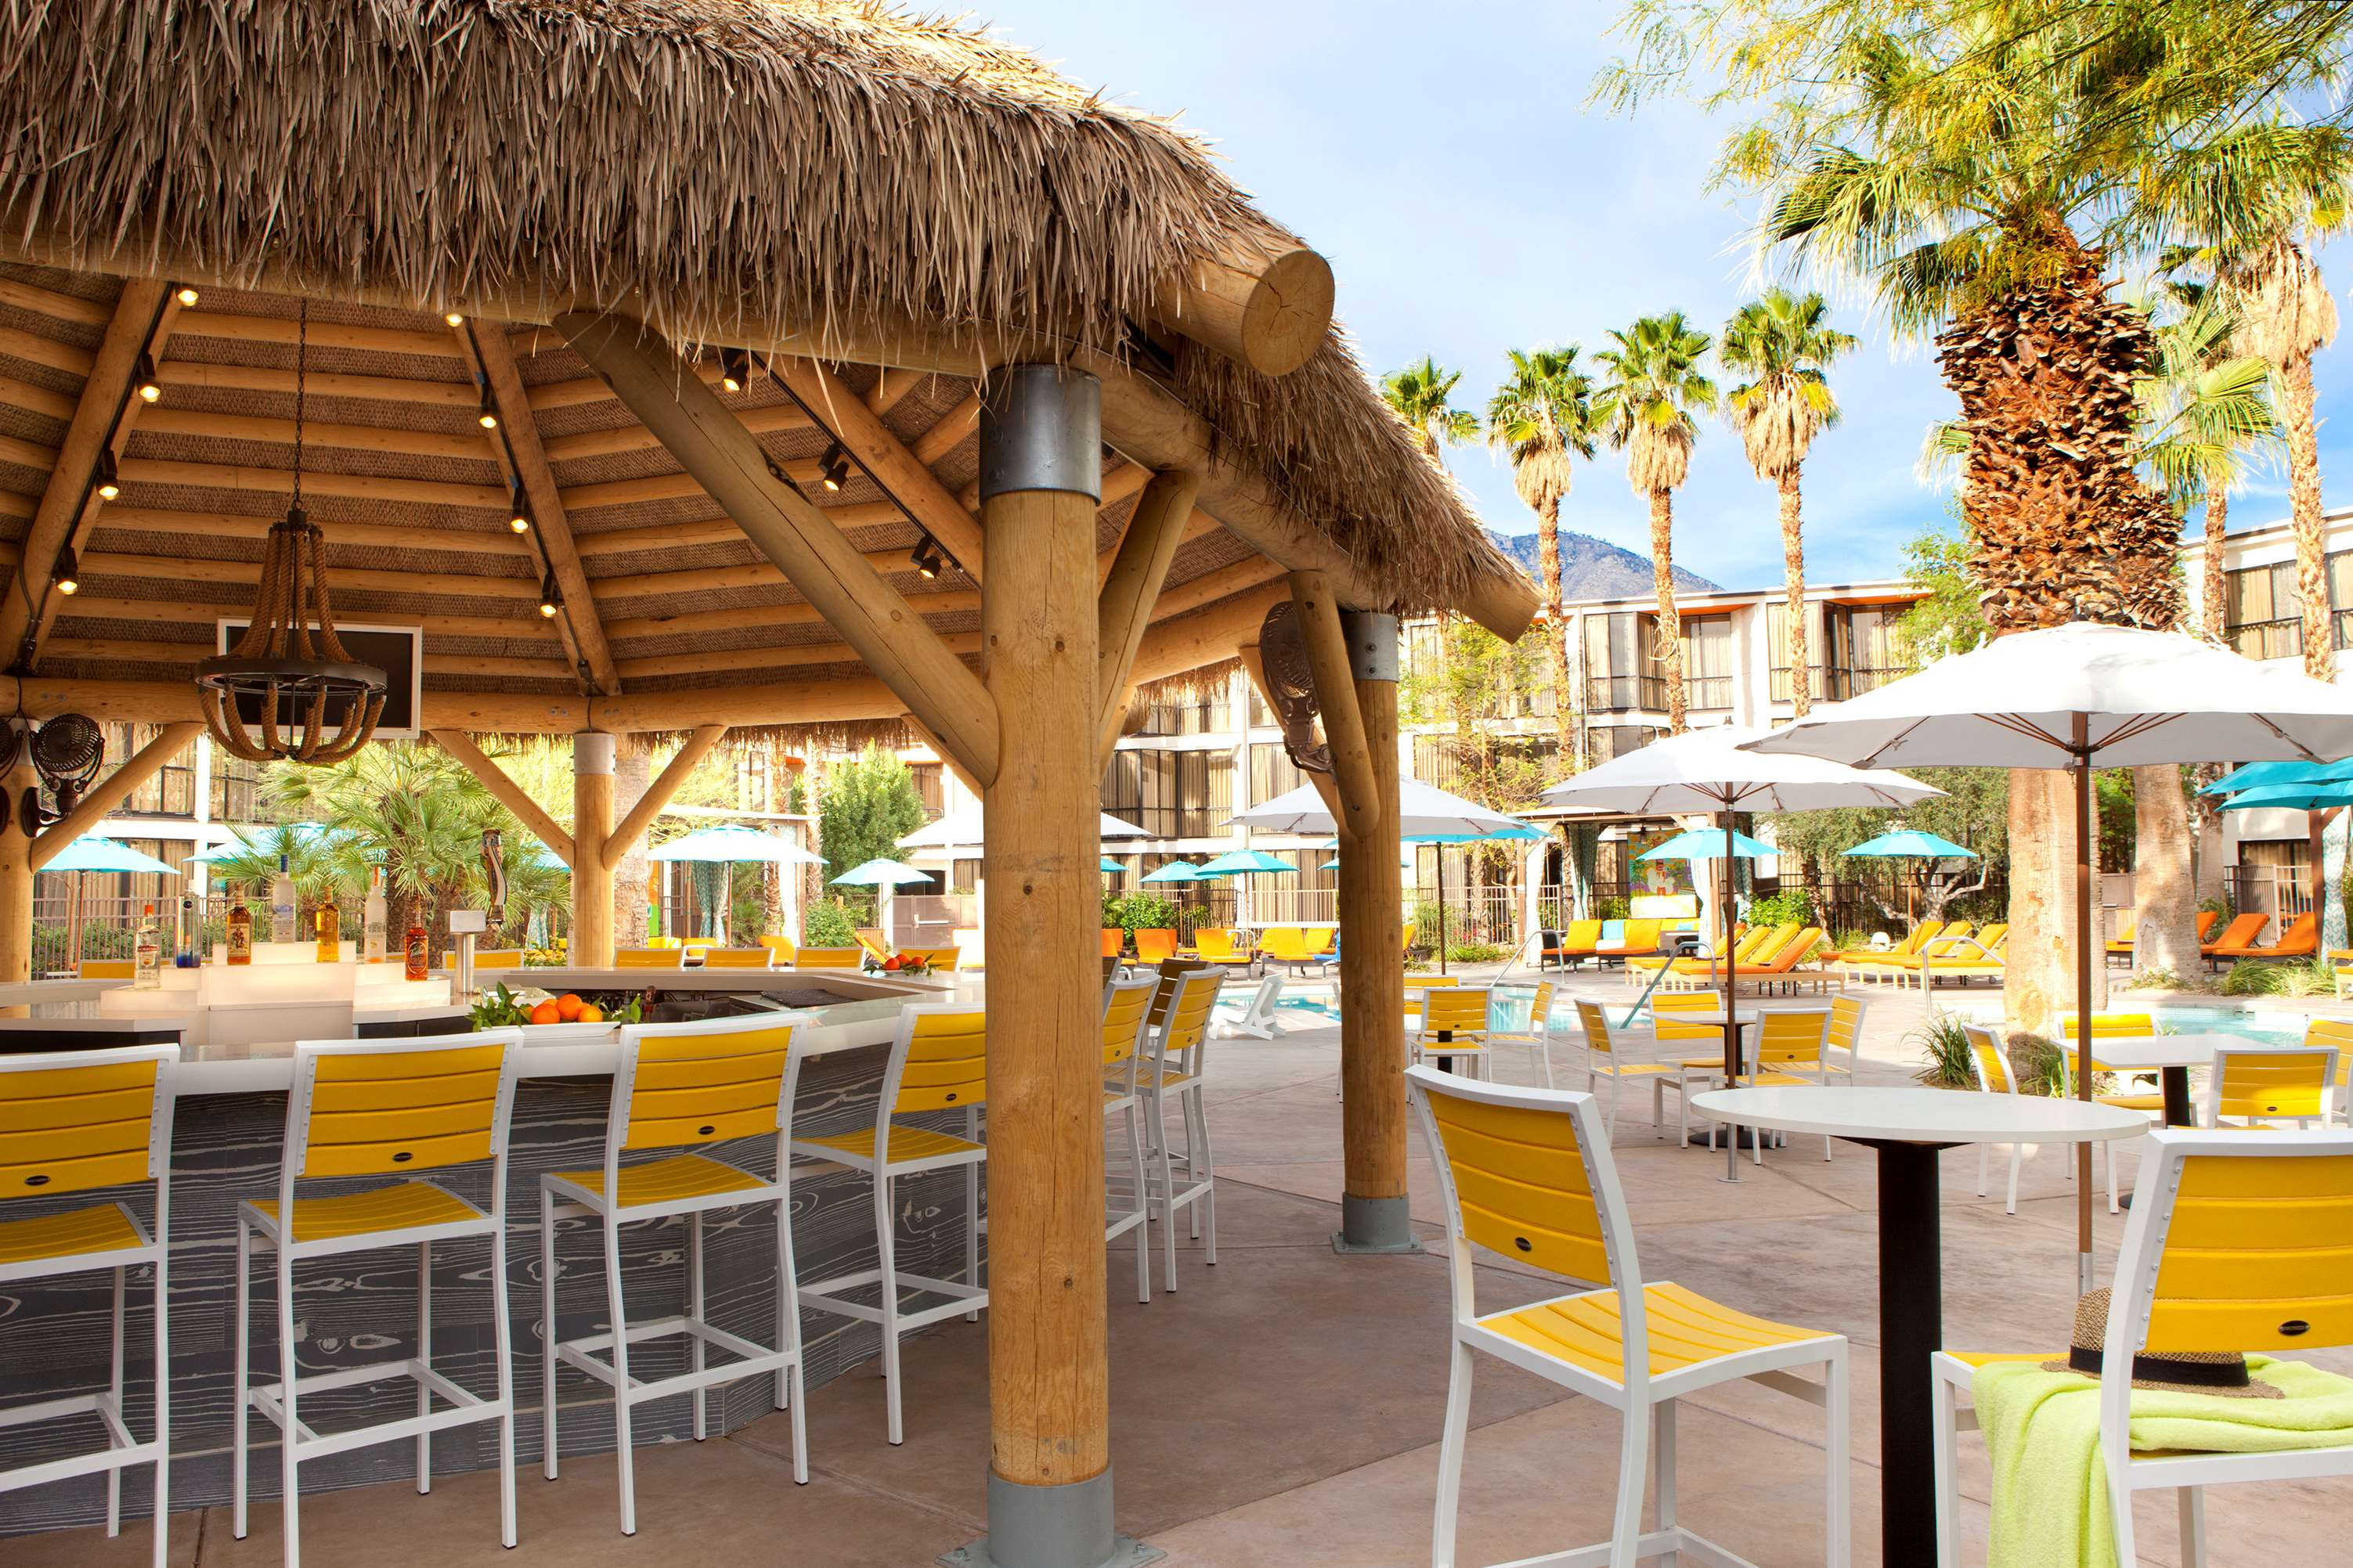 Feb 24, · Just wanted to report that the Palm Springs Riviera Resort was a very nice hotel with friendly staff, excellent rooms and beautiful pool area. We hope to return soon! Be aware of a $ per day Resort Fee, and Valet Parking only.